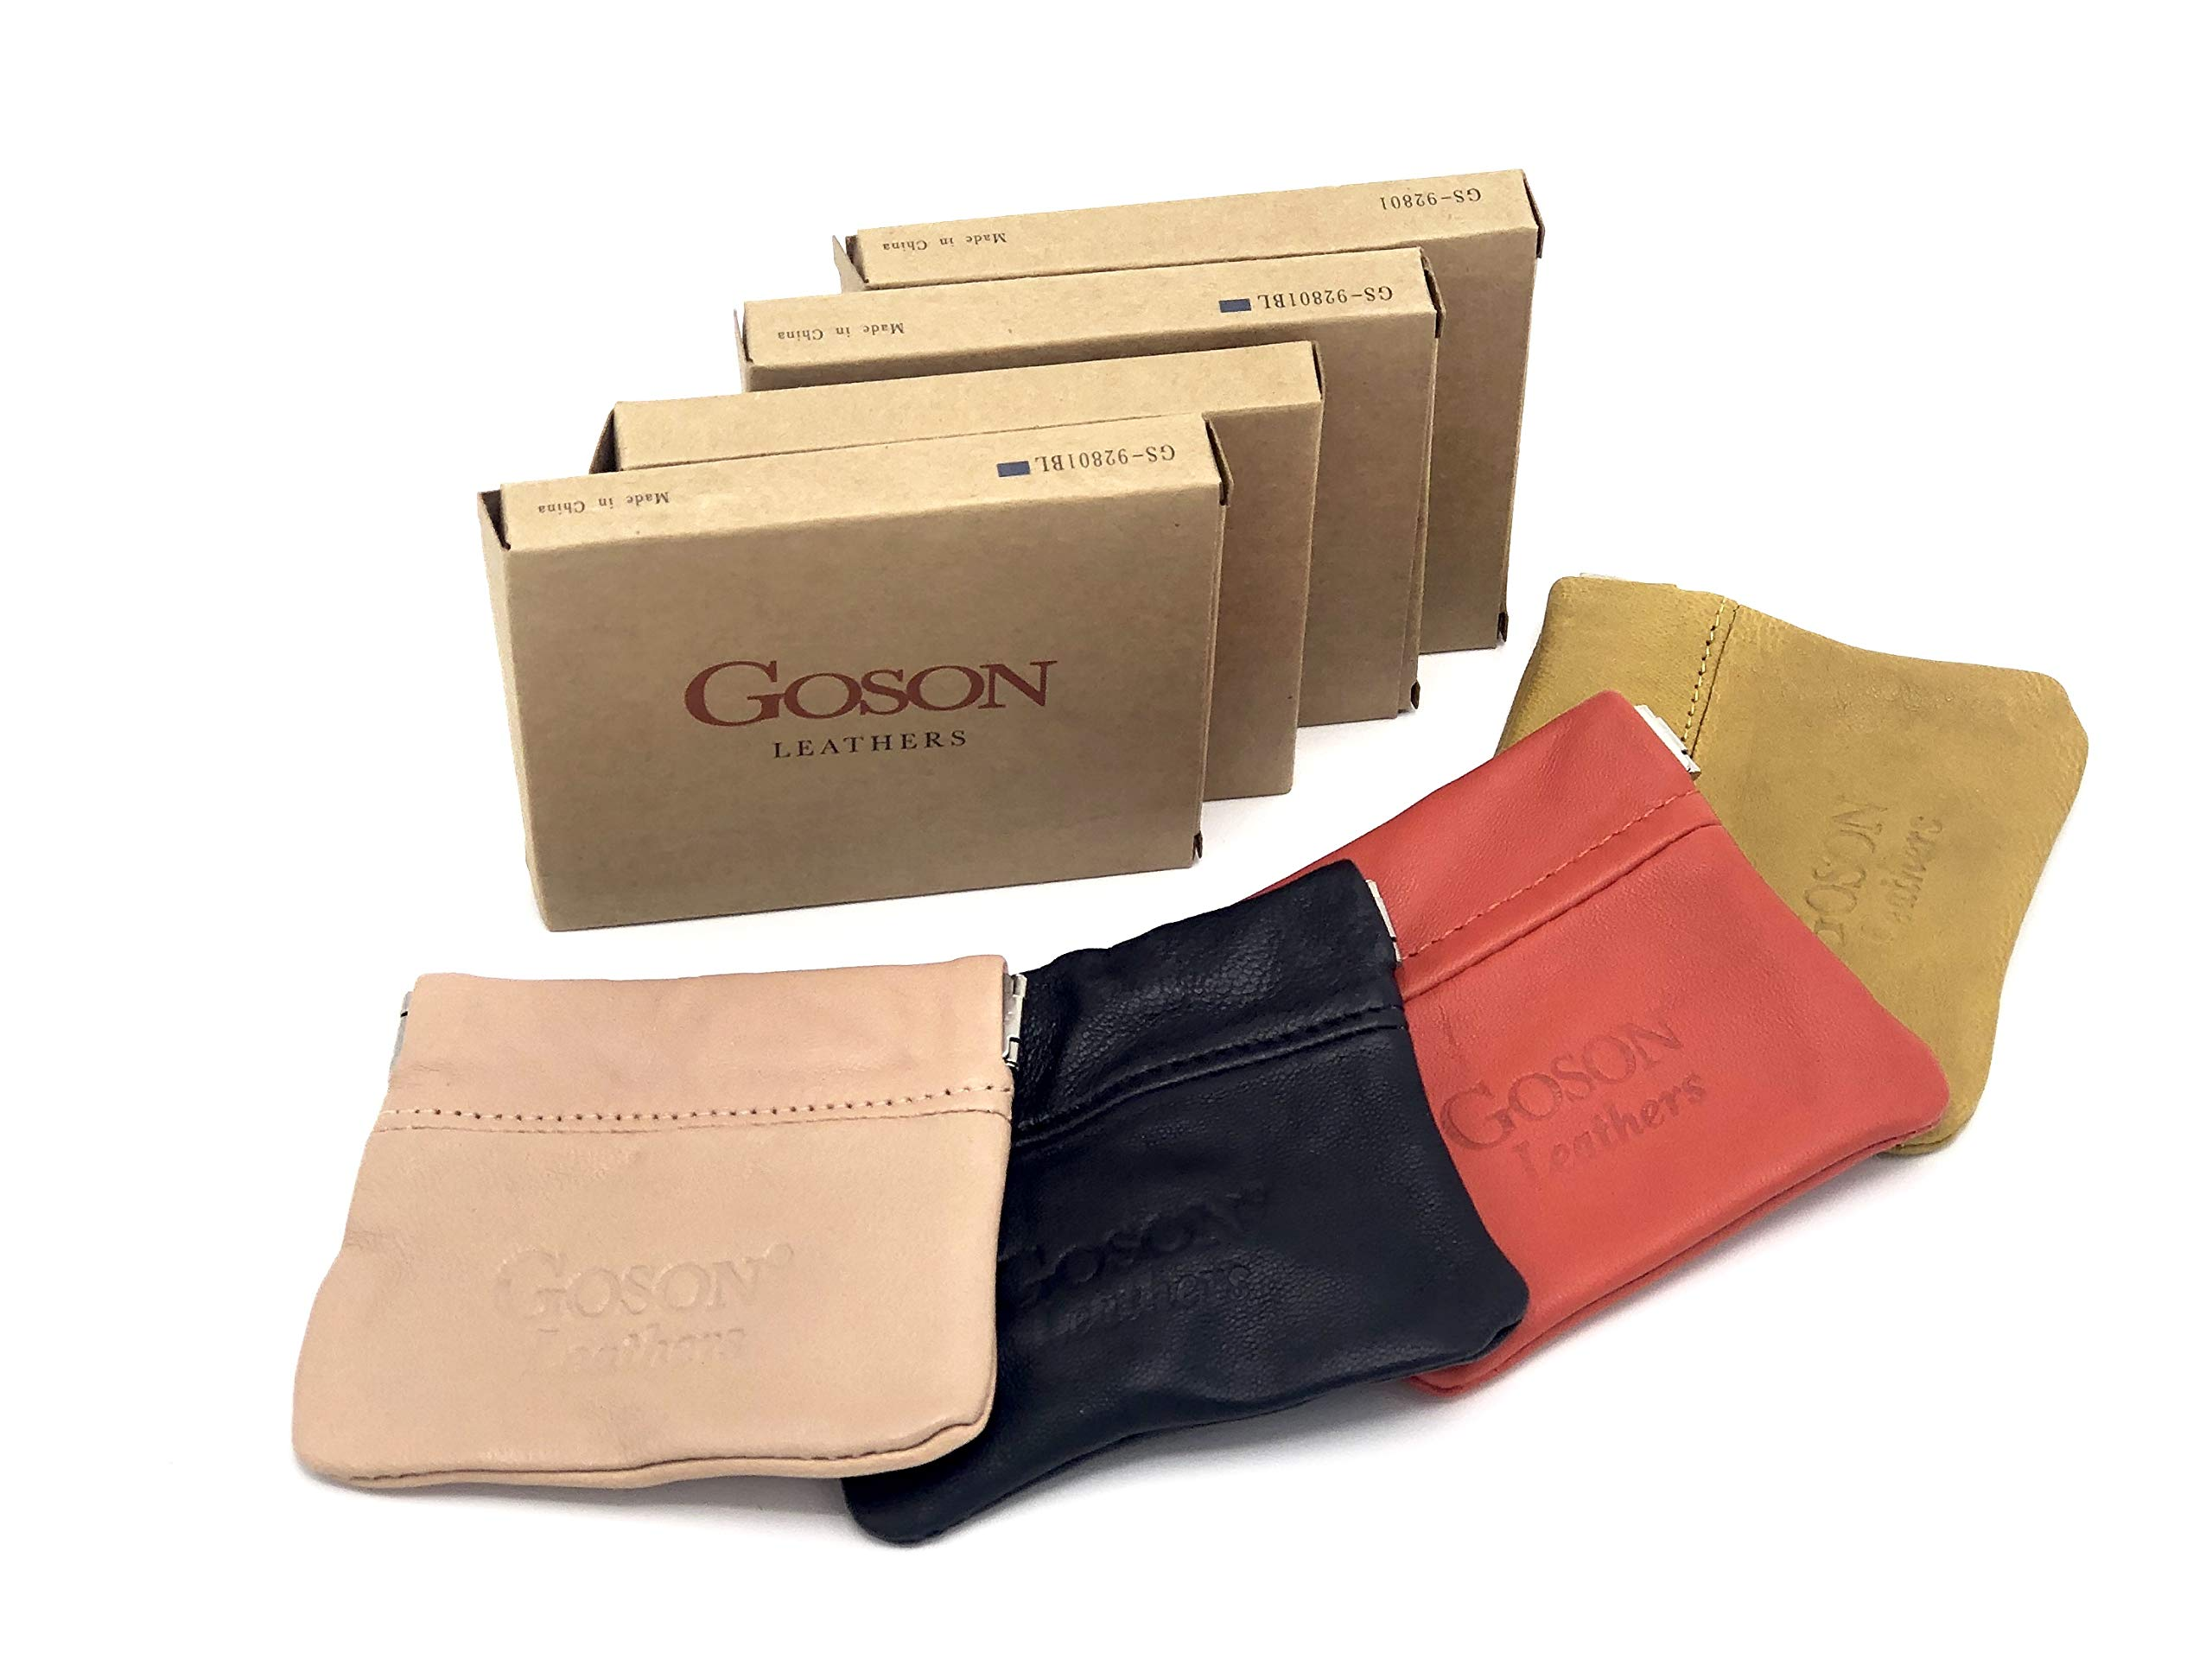 Goson Classic Leather Squeeze Coin Purse change Holder For Men and Women, Pouch size 3.25 in X 3.25 in (4 Pack - Peach, Navy Blue, Orange, Yellow)